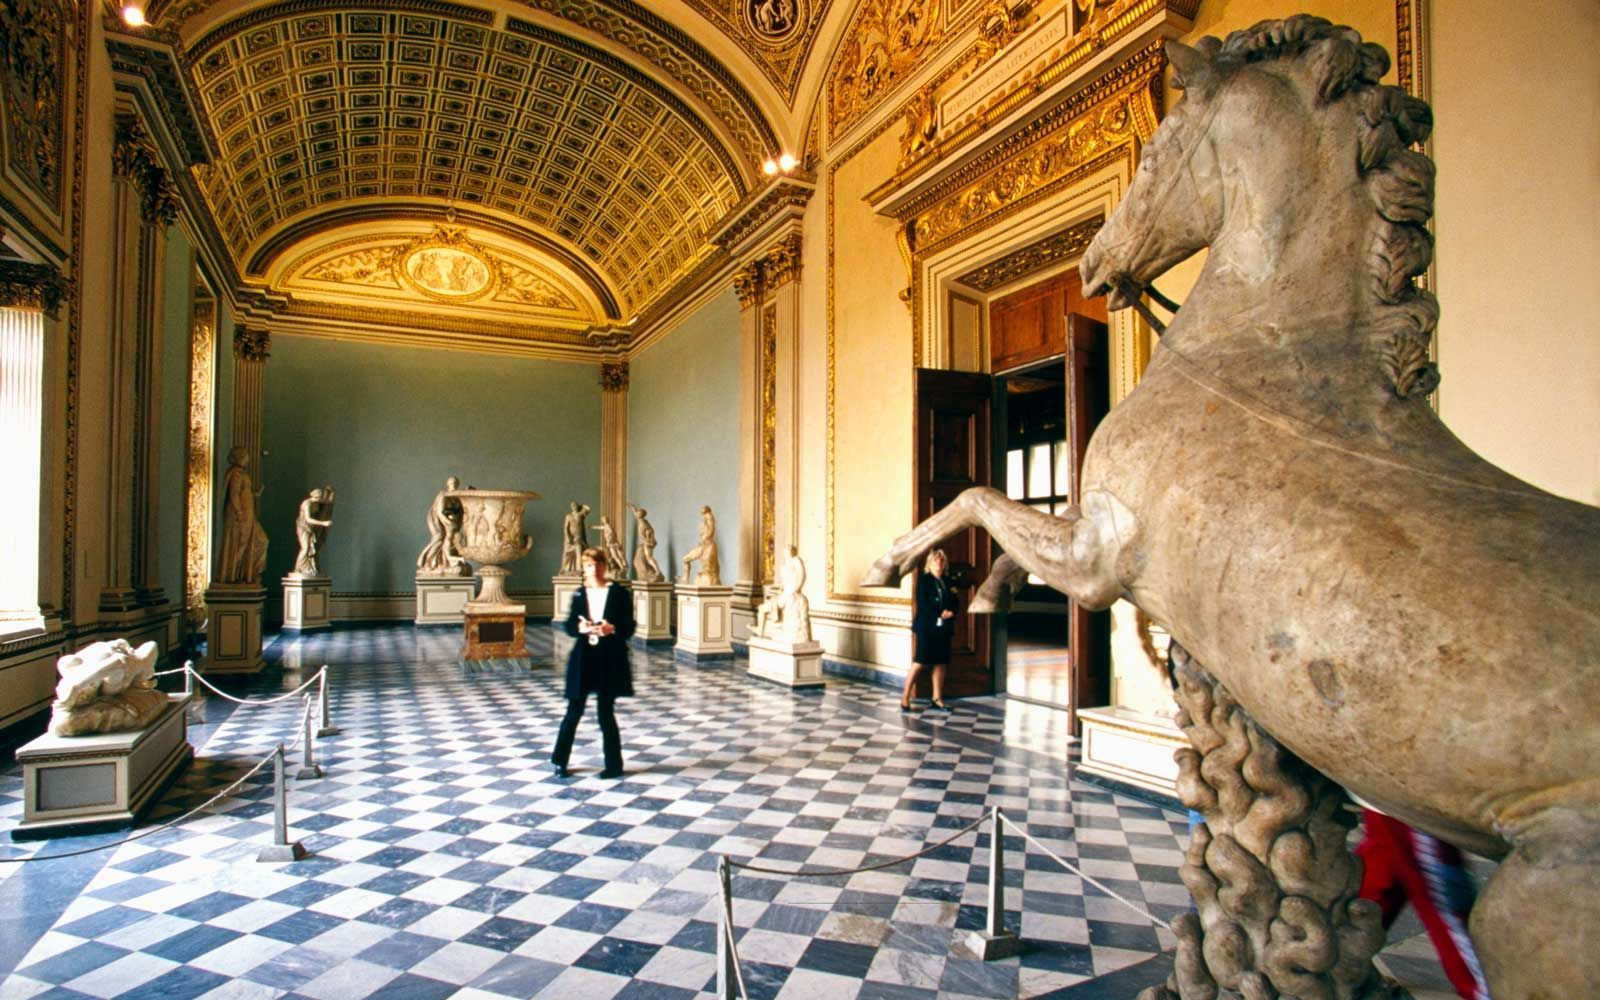 Stuck at Home? These 12 Famous Museums Offer Virtual Tours You Can Take on Your Couch -  Stuck at Home? These 12 Famous Museums Offer Virtual Tours You Can Take on Your Couch (Video)  - #BeautifulCelebrities #couch #Egypt #famous #Film #home #Museums #offer #stuck #these #tours #virtual